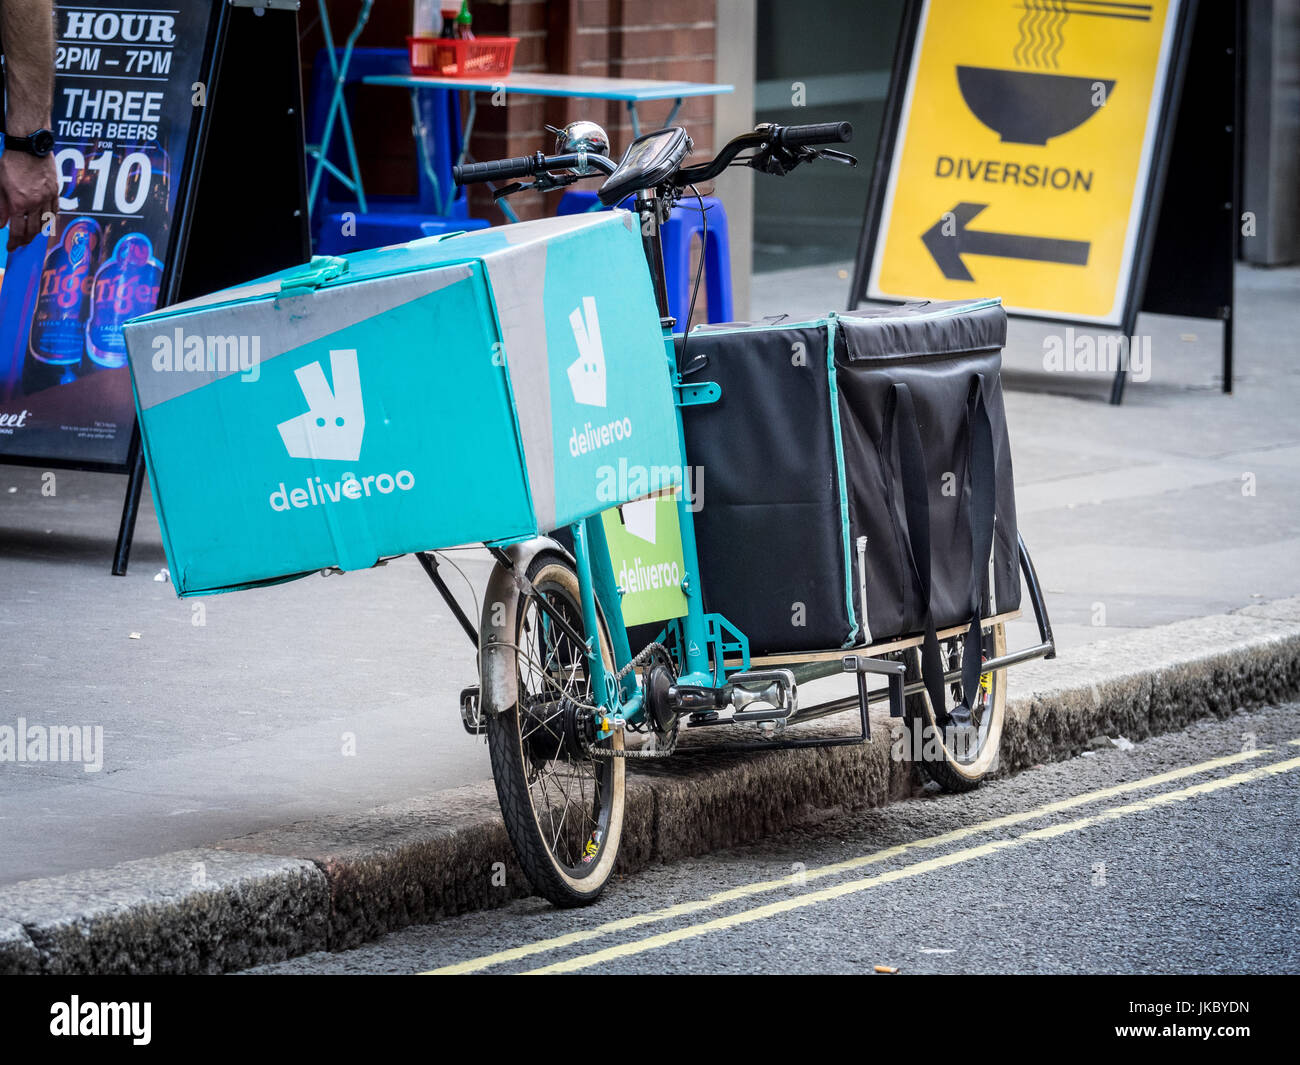 Deliveroo Cargo Bike - a Deliveroo Food Delivery Courier cargo bike parked outside a restaturant in central London Stock Photo